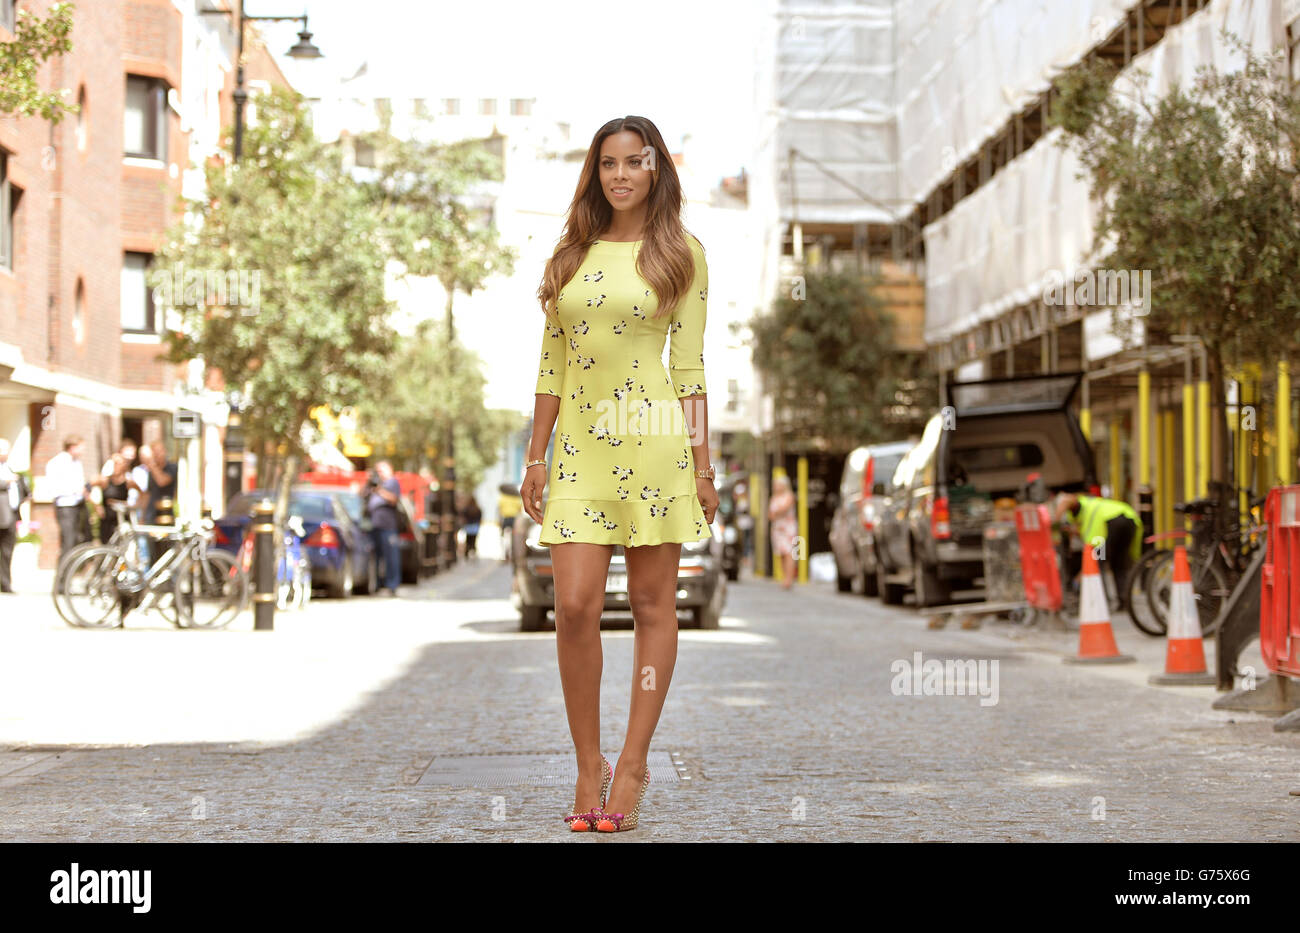 Rochelle Humes fashion collection - Stock Image